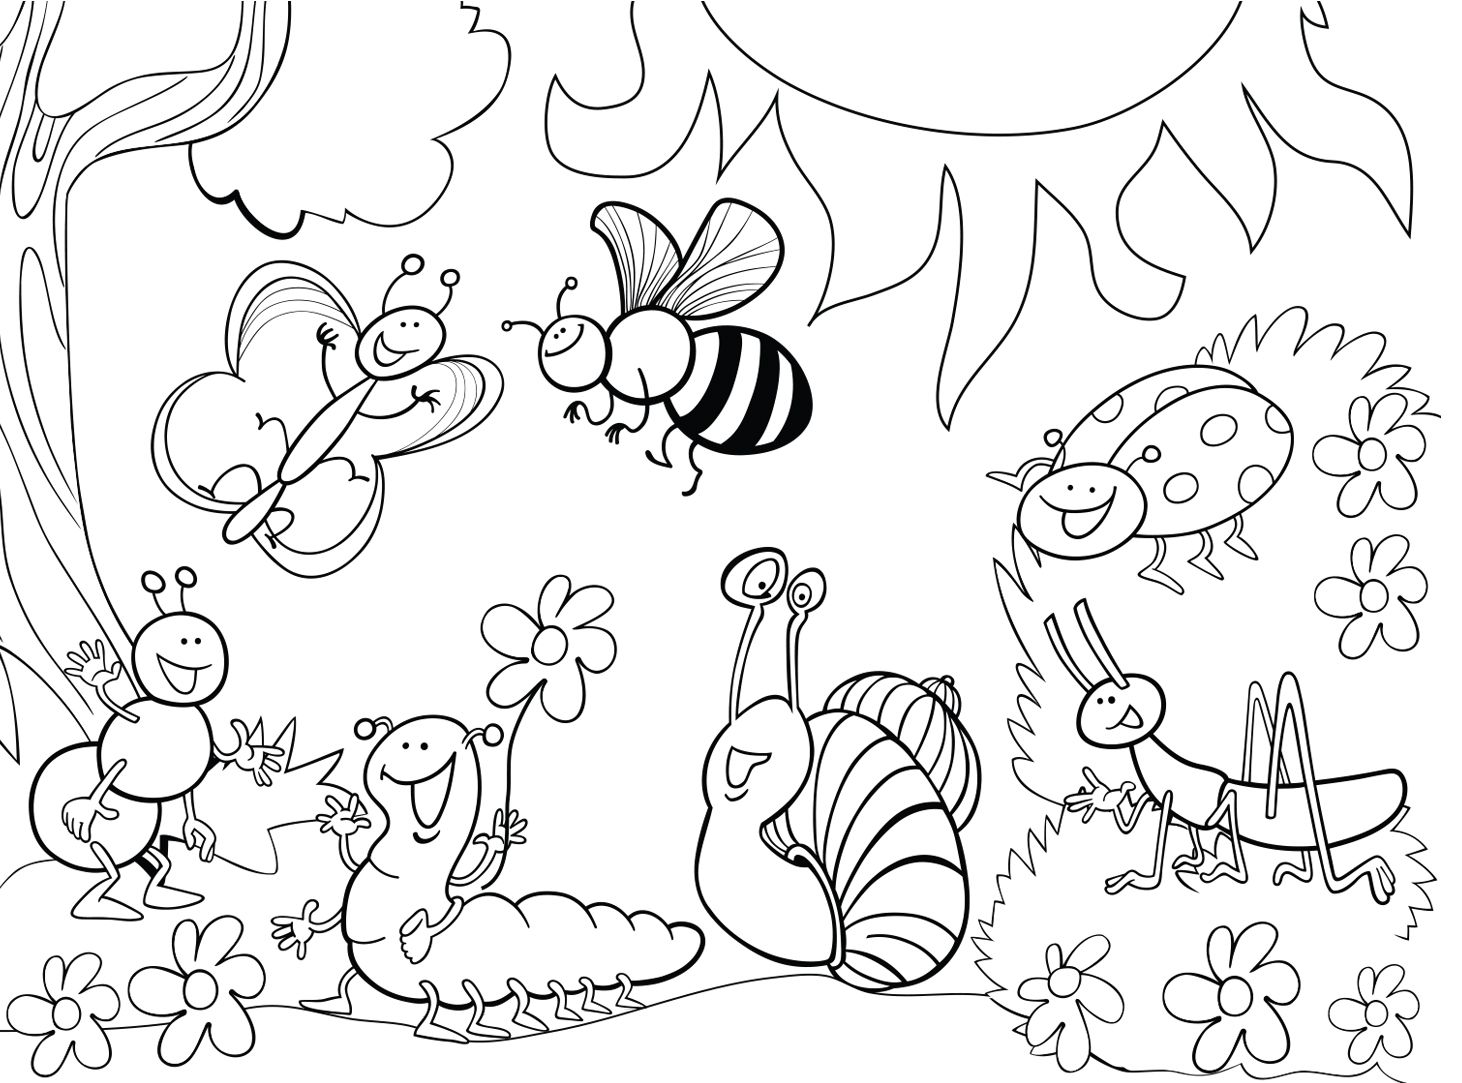 1114016 Garden Insect Coloring Page 1462×1083 Color Now